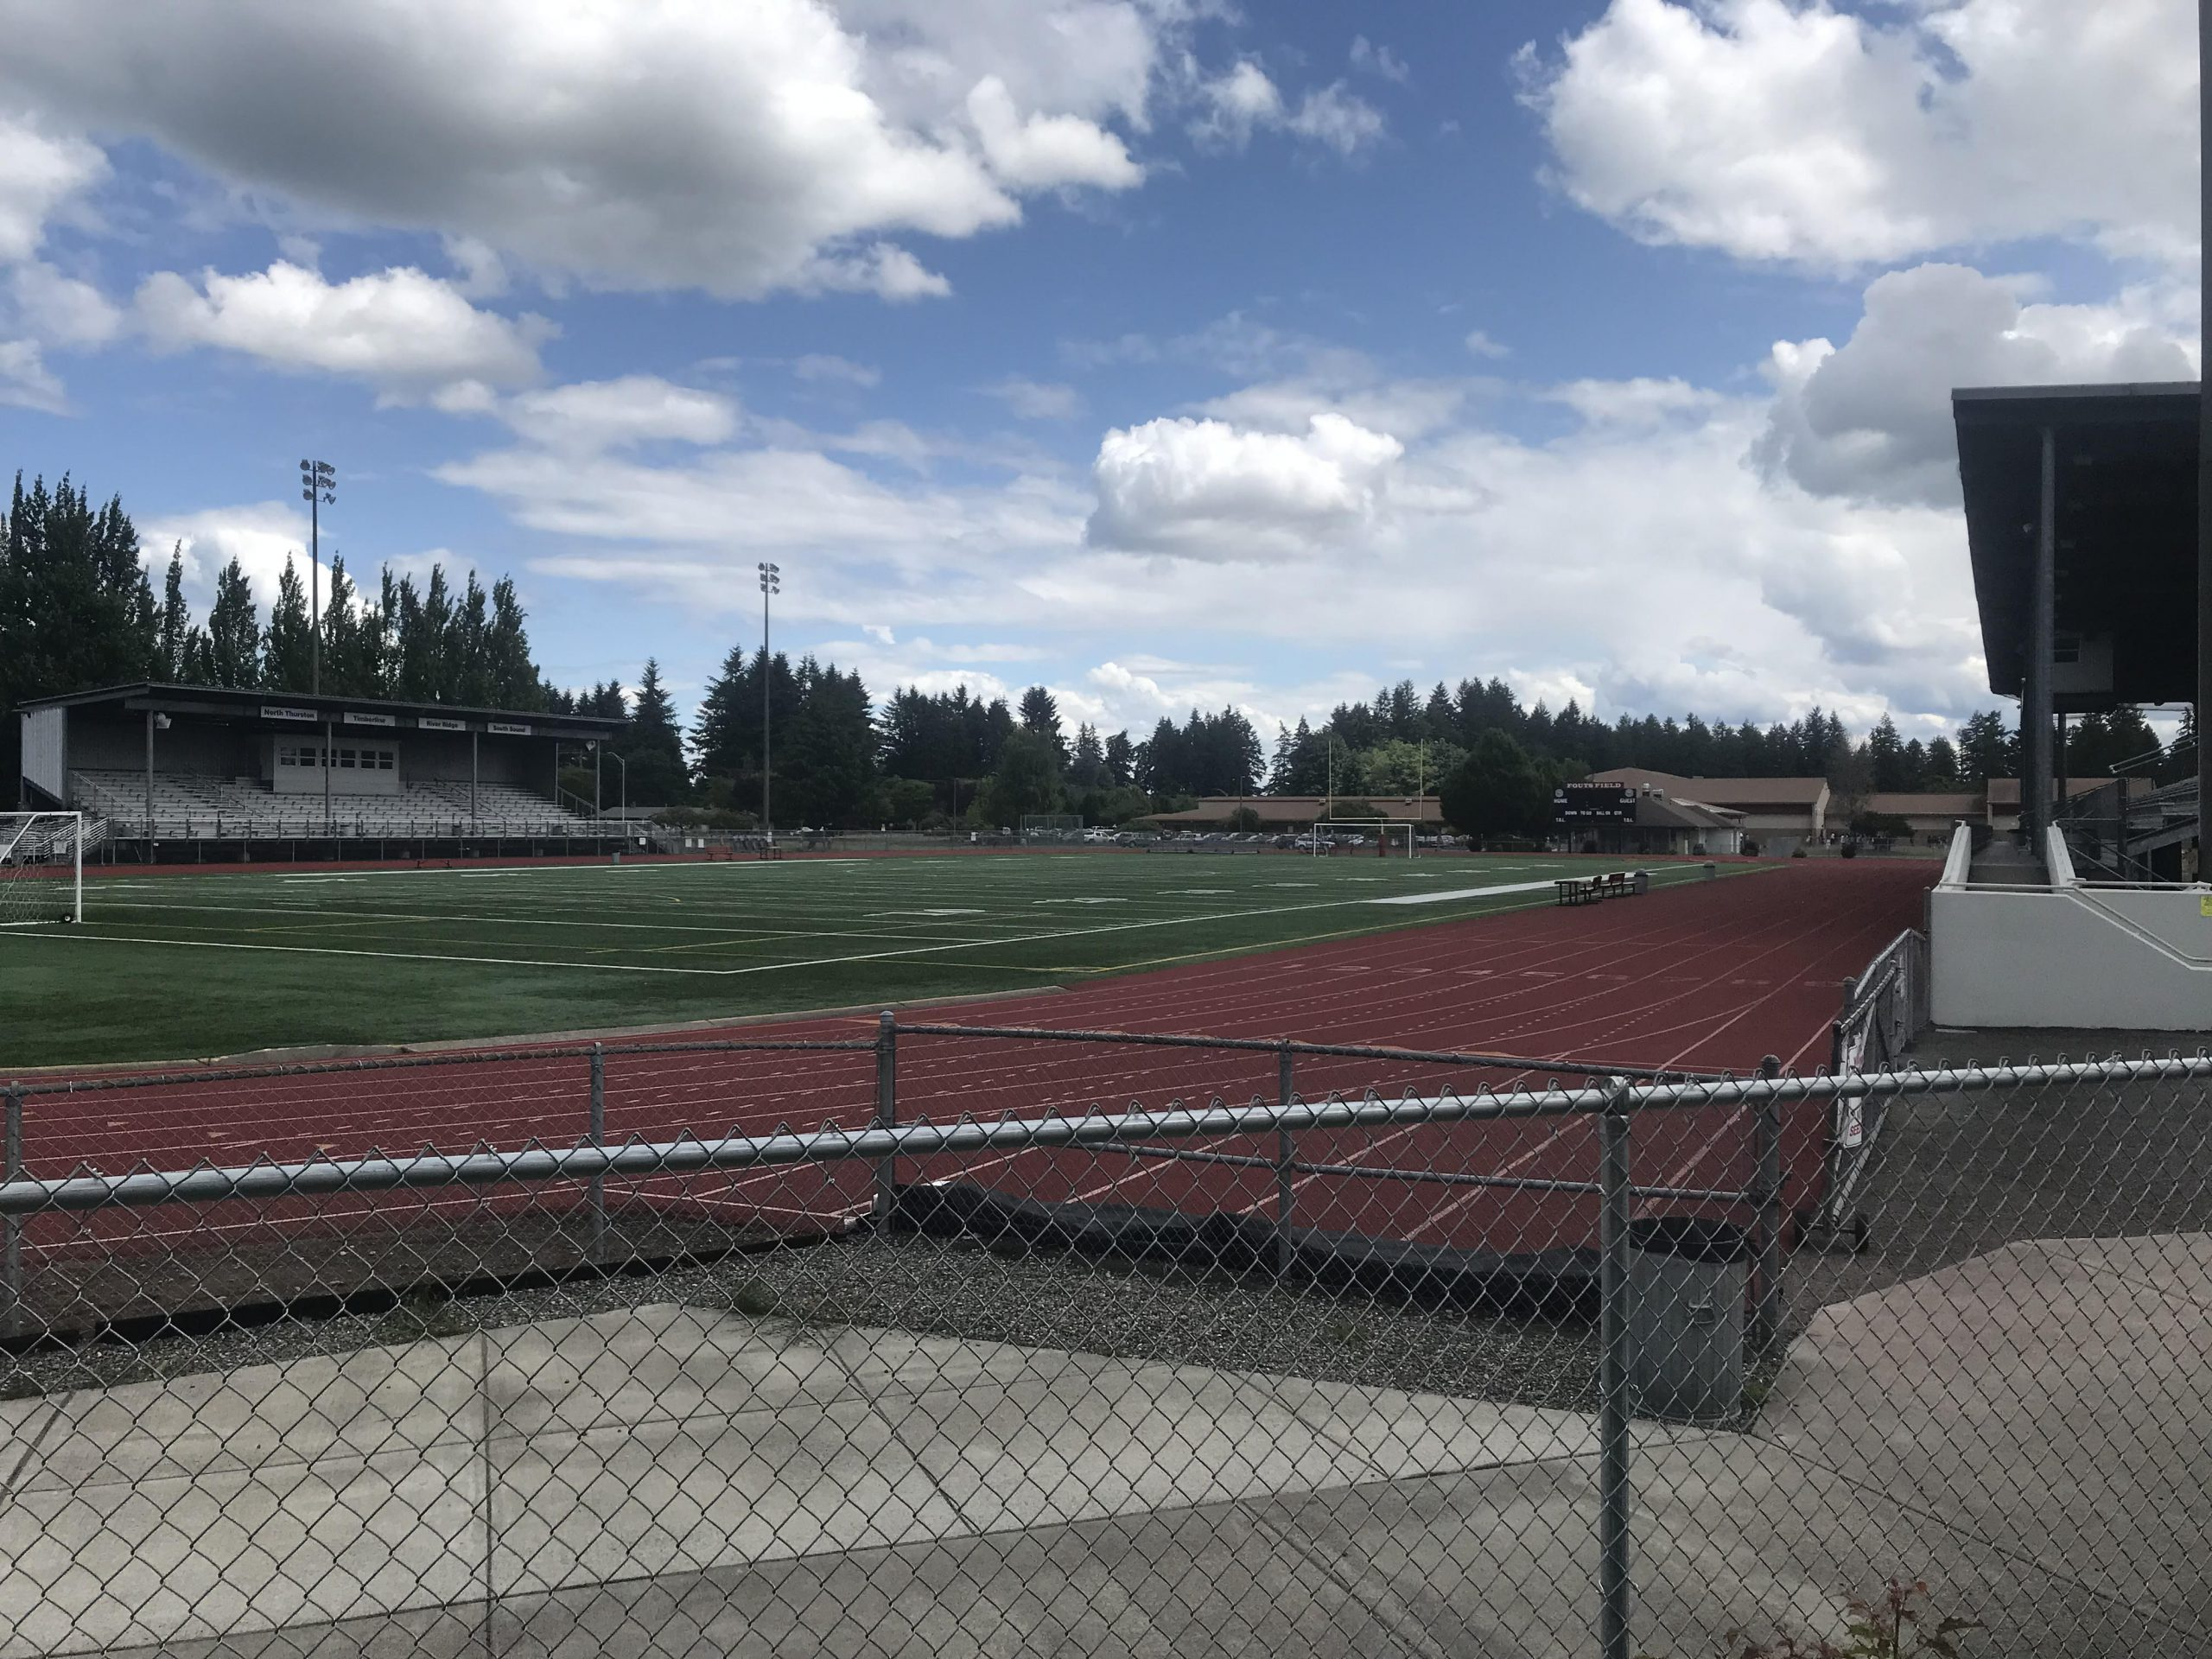 An Image of a sports field